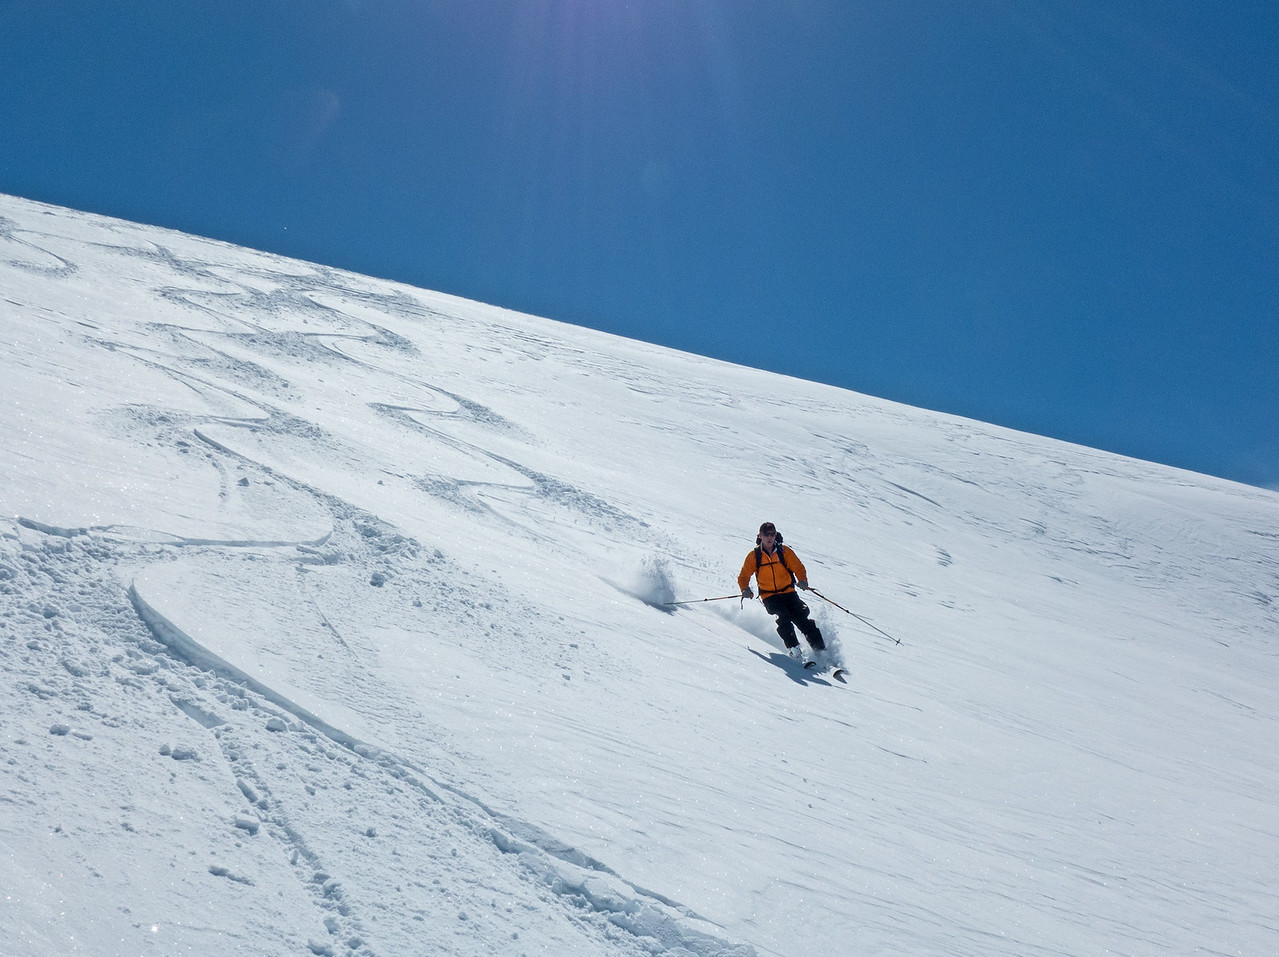 It was good enough to skin back up the glacier for another go. Bob enjoying the fast skiing in wind sifted powder.